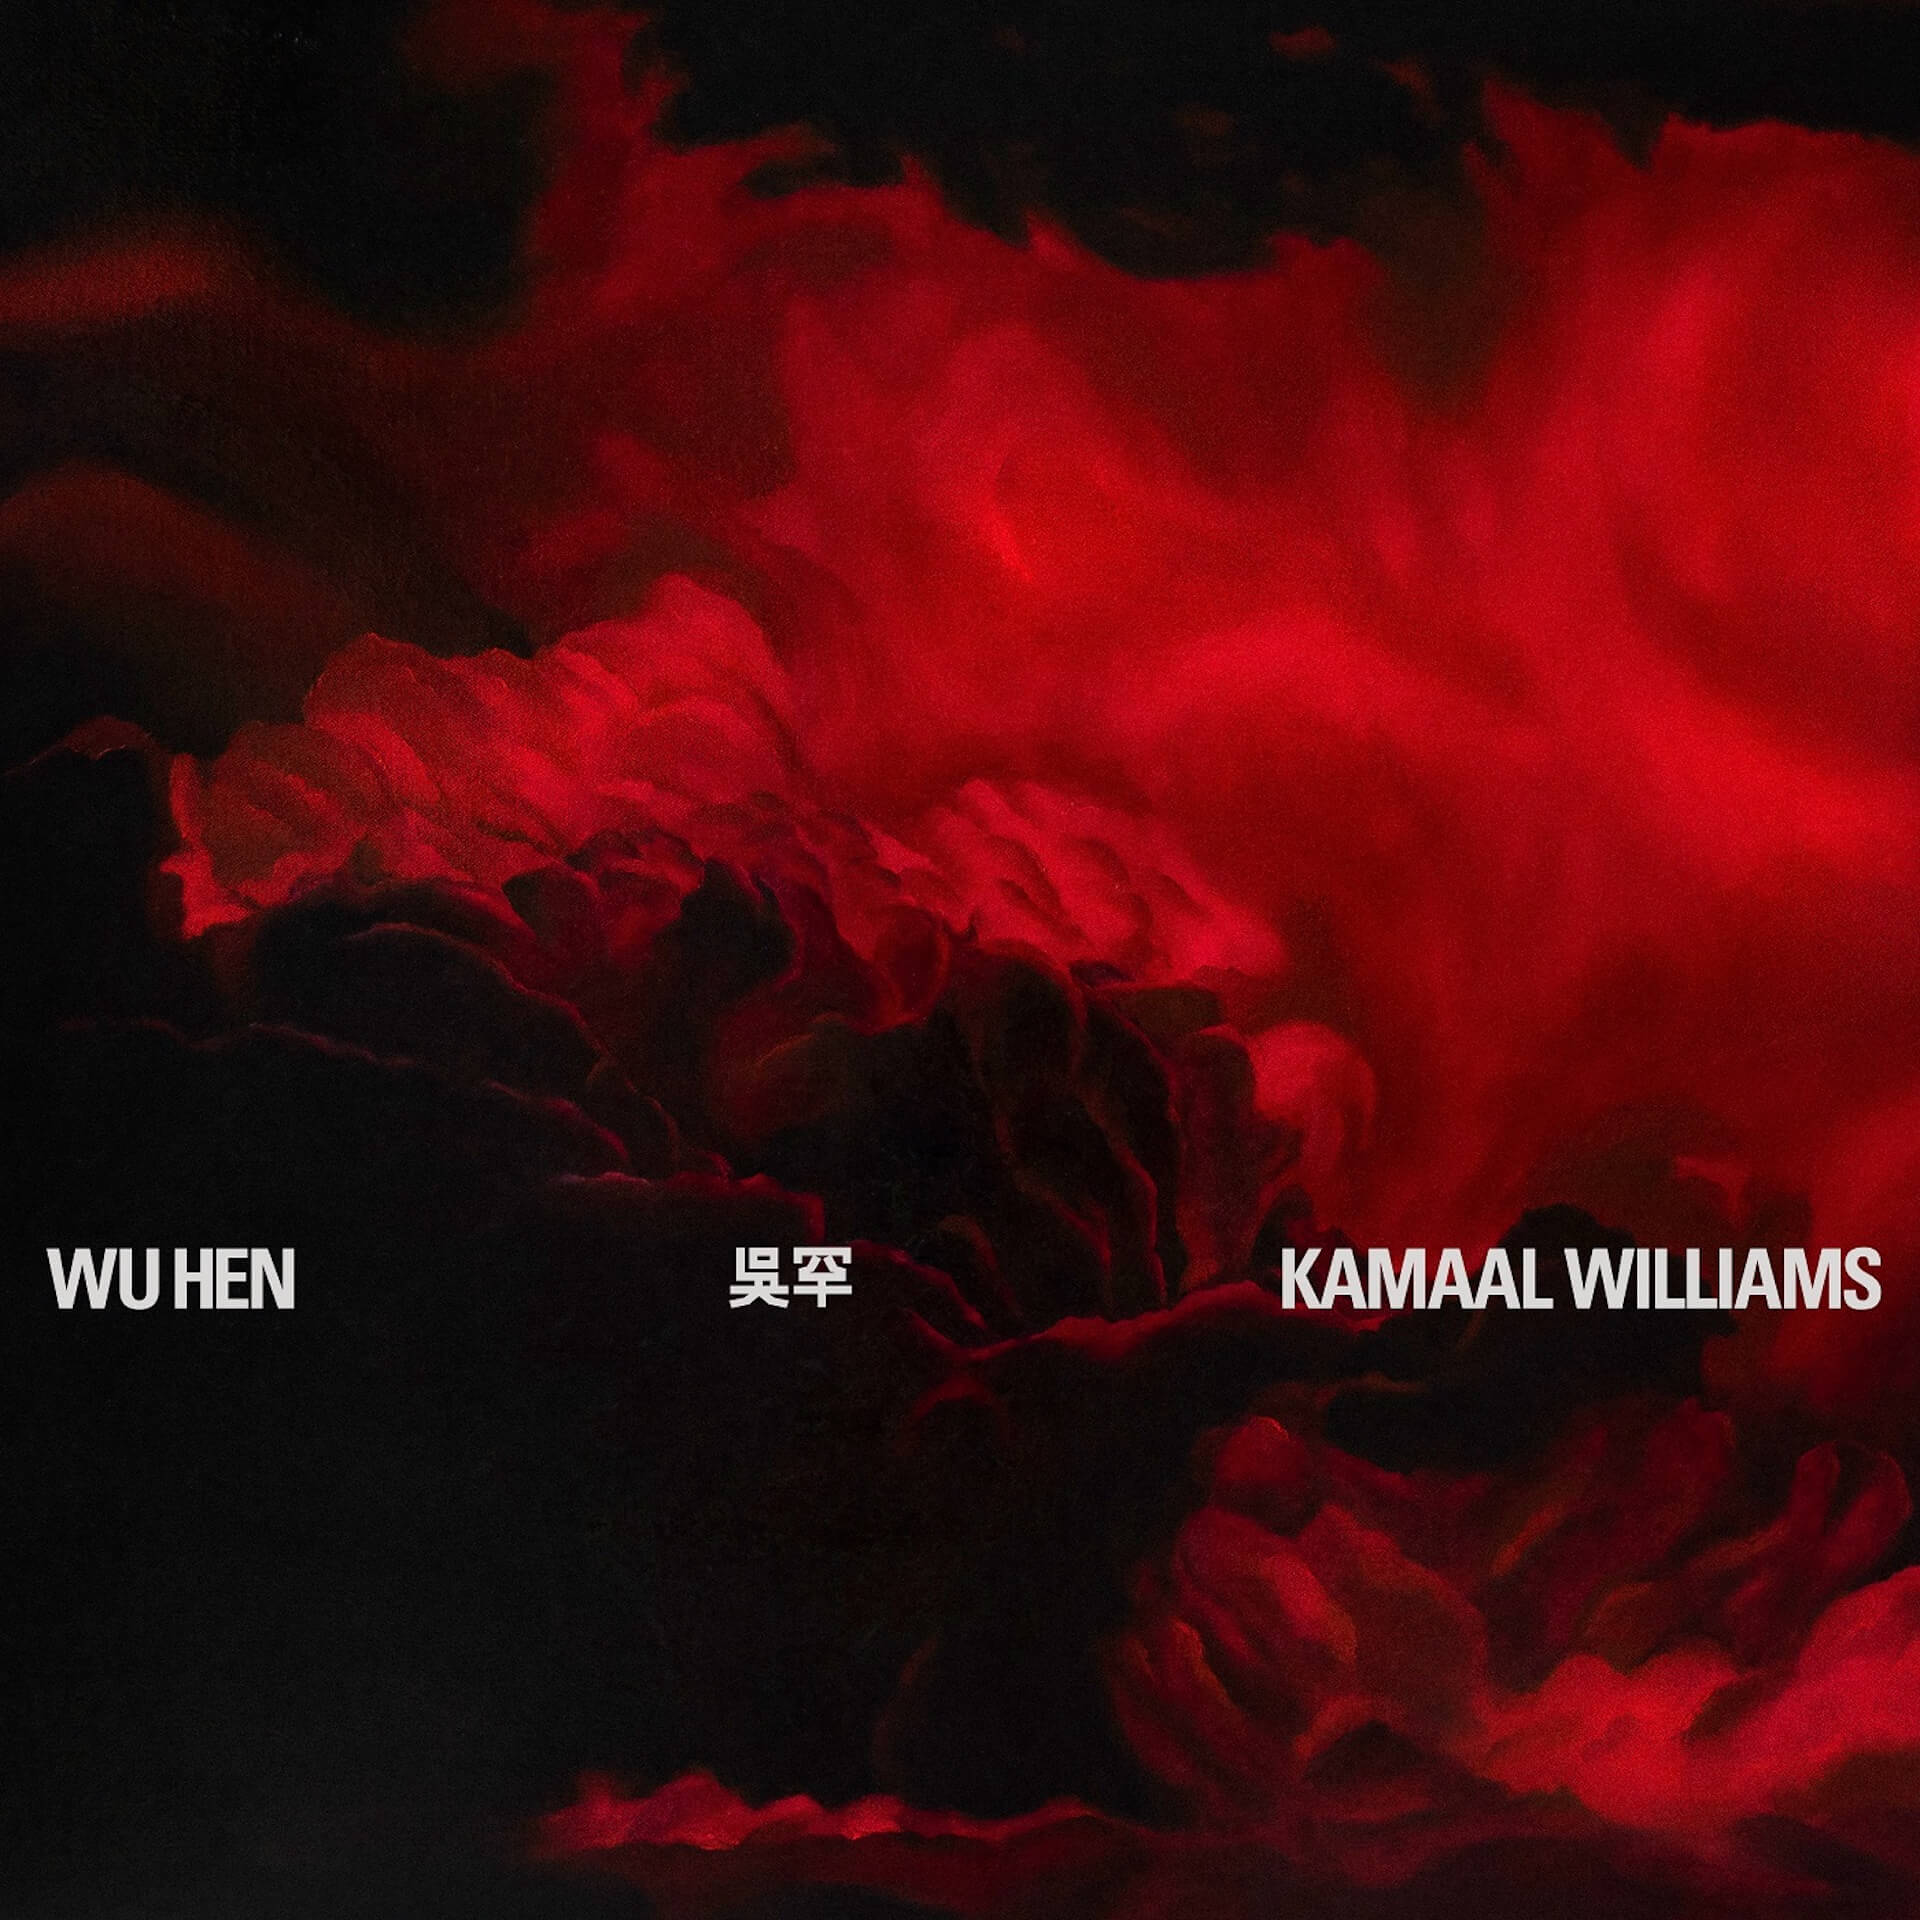 "Kamaal Williamsの待望の新作『Wu Hen』より新曲""Hold On(feat. Lauren Faith)""が公開 music200625_kamaalwilliams_1"